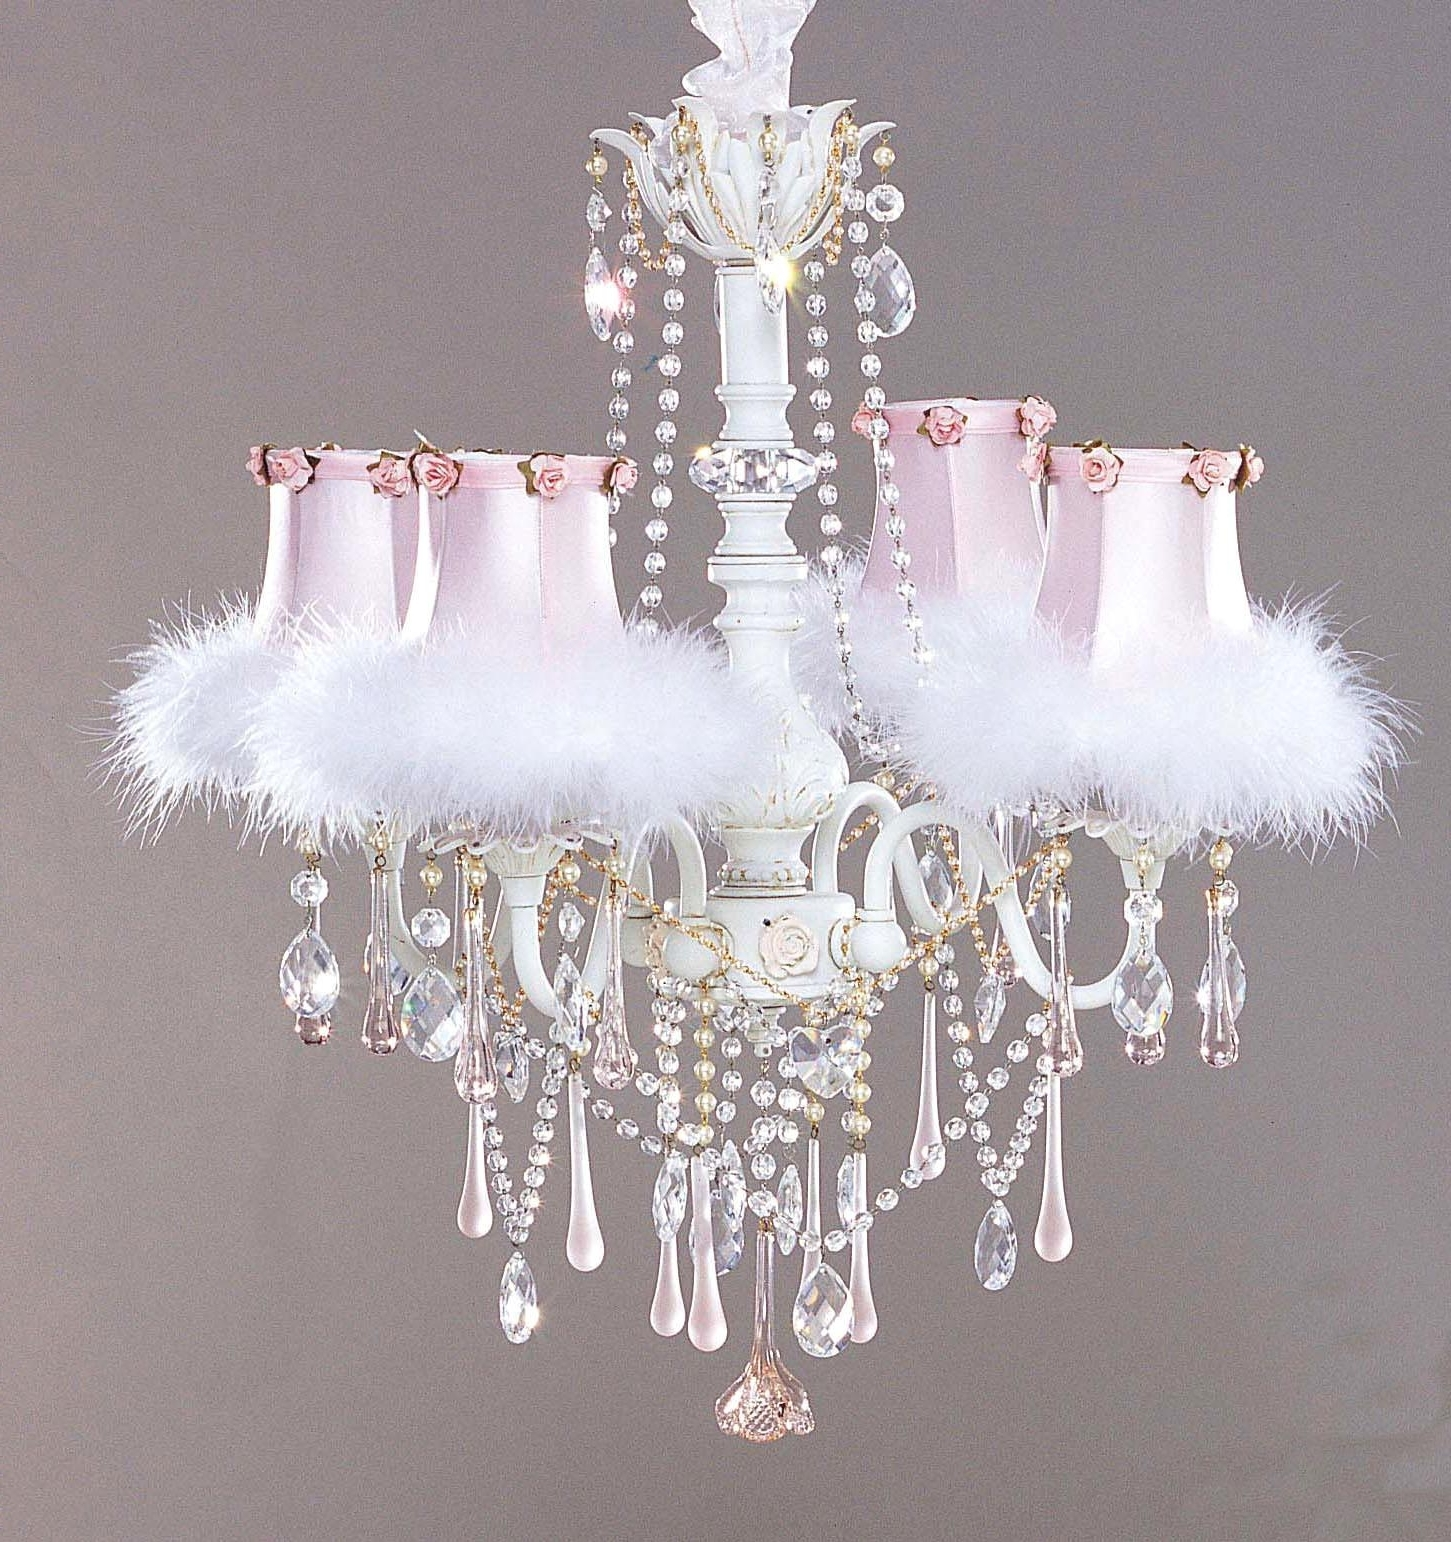 Recent Chandeliers : Shabby Chic Chandelier Elegant Chandelier Small Throughout Small Shabby Chic Chandelier (View 7 of 15)